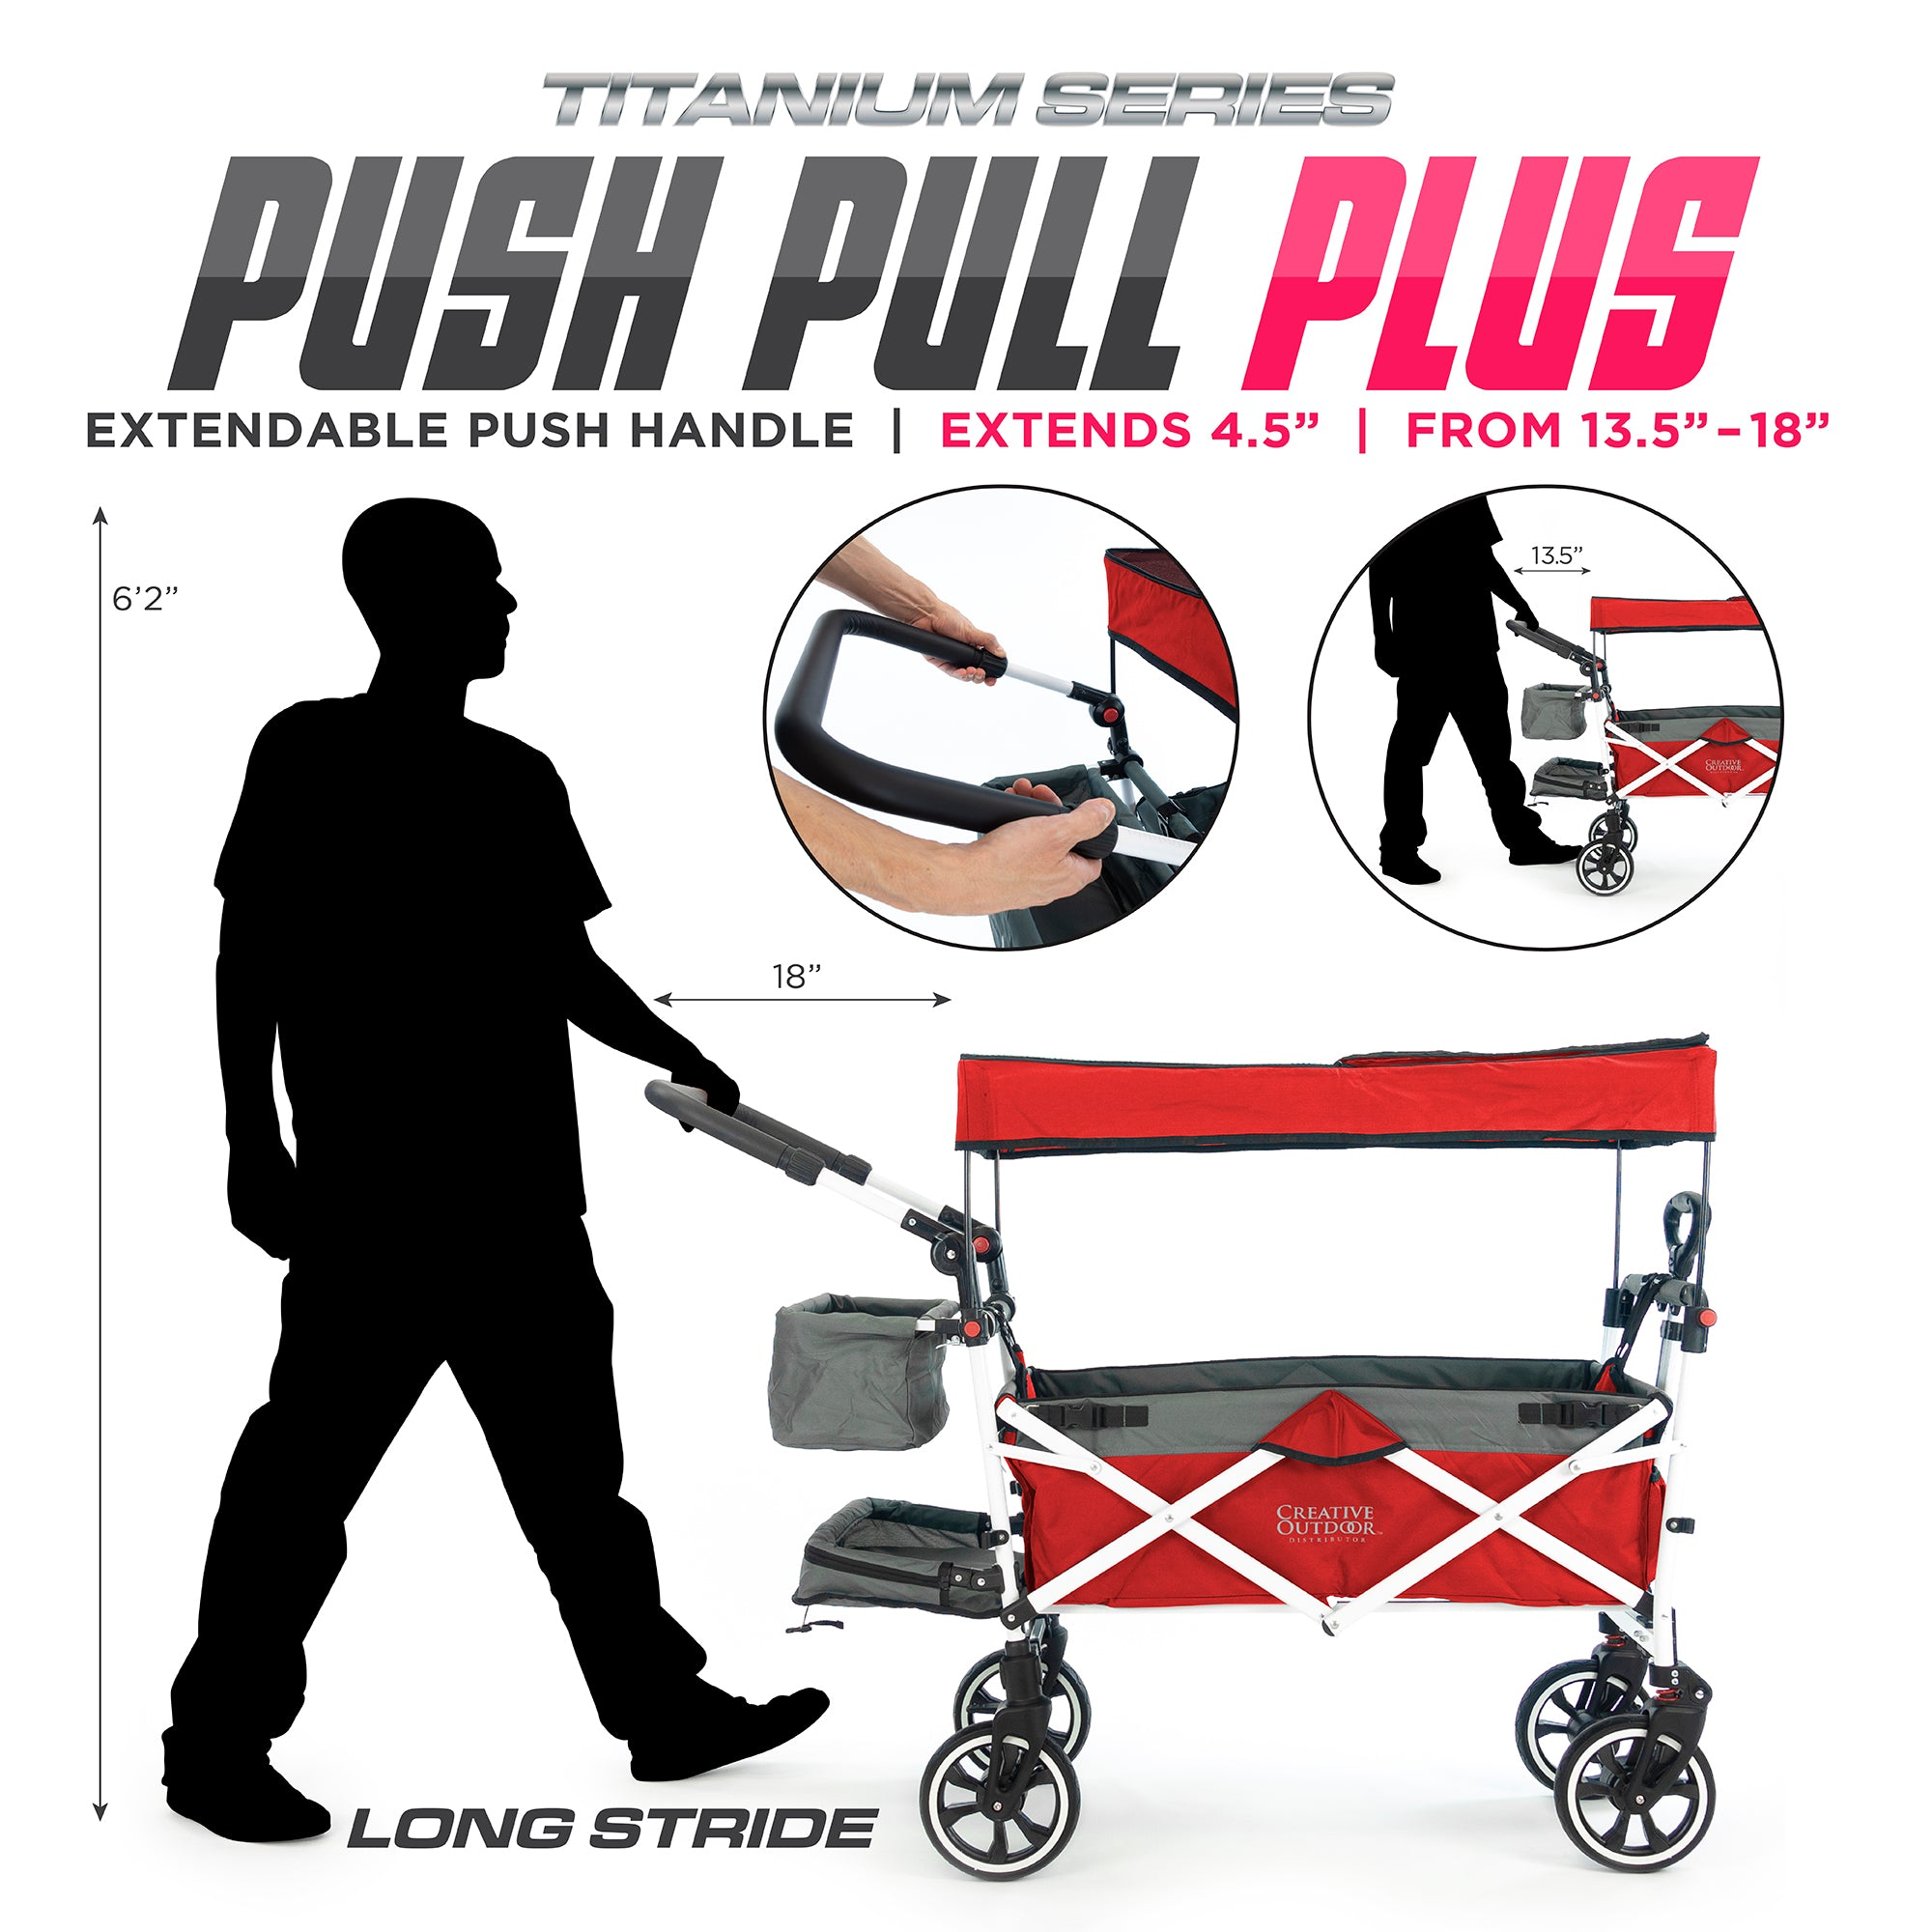 Push Pull Folding Stroller Wagon Titanium Series Red | Suspension Spring Plus Extendable Handle